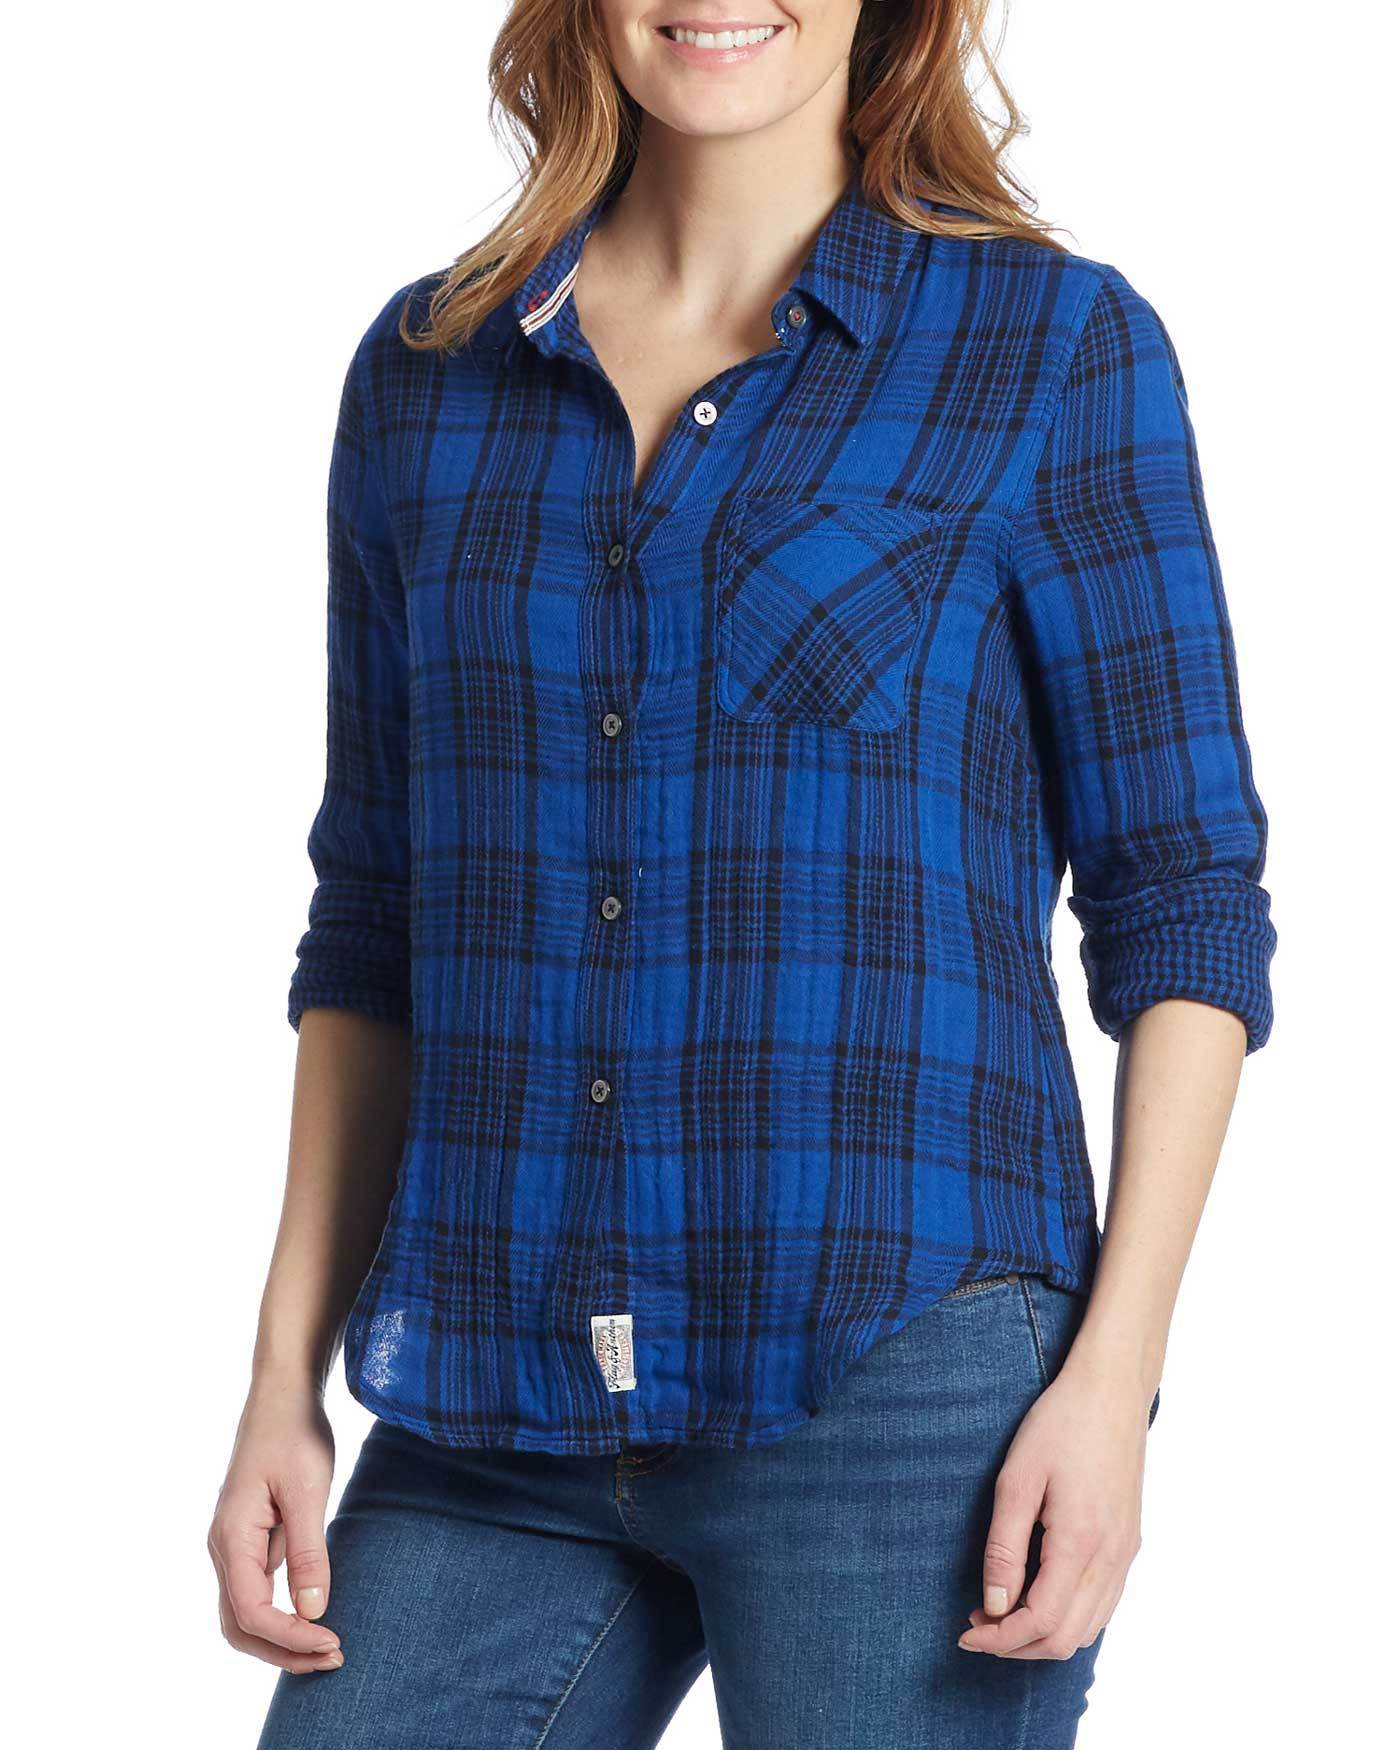 Women's Shirts - BELLAMY WOMEN'S DOUBLE LAYER SHIRT - BLUE/BLACK